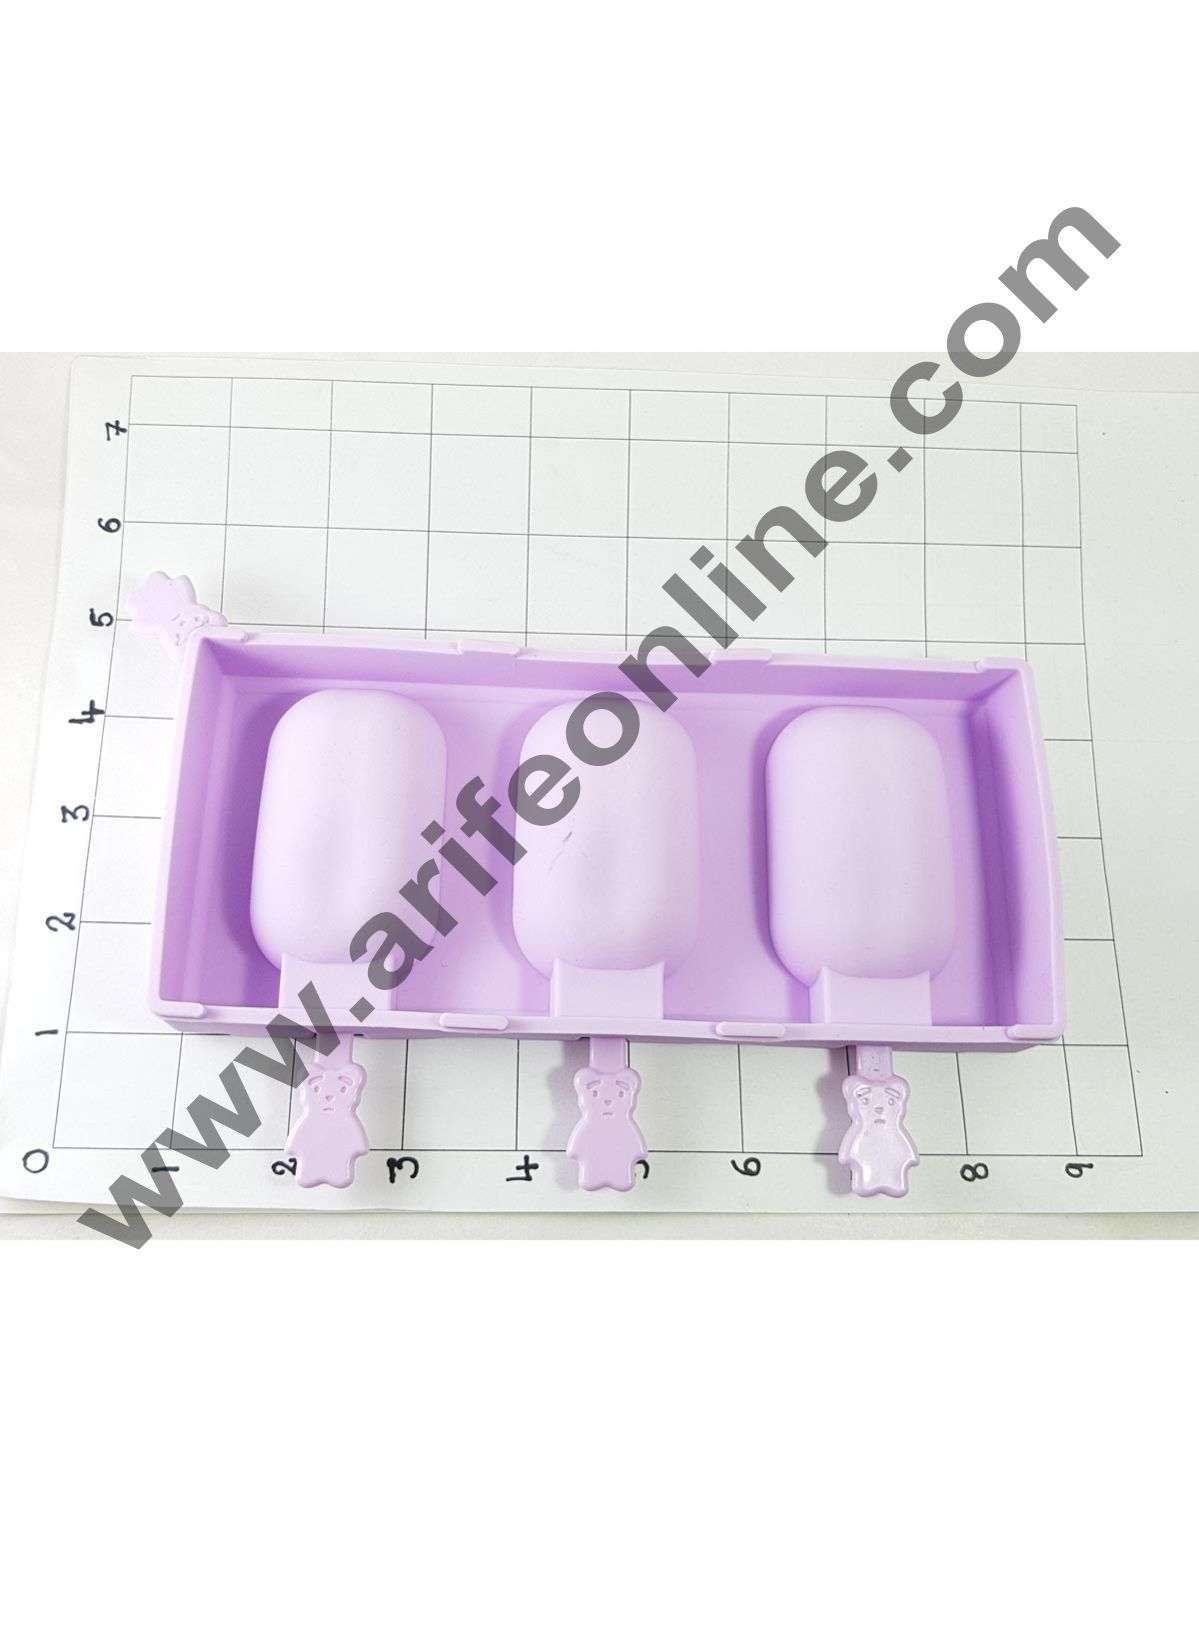 Cake Decor 3 in 1 Silicone Ice Cream Mold Wave Section Popsicle And Cakesicle Molds Tools With Dust Cover Sticks Frozen Mold Kitchen Accessories